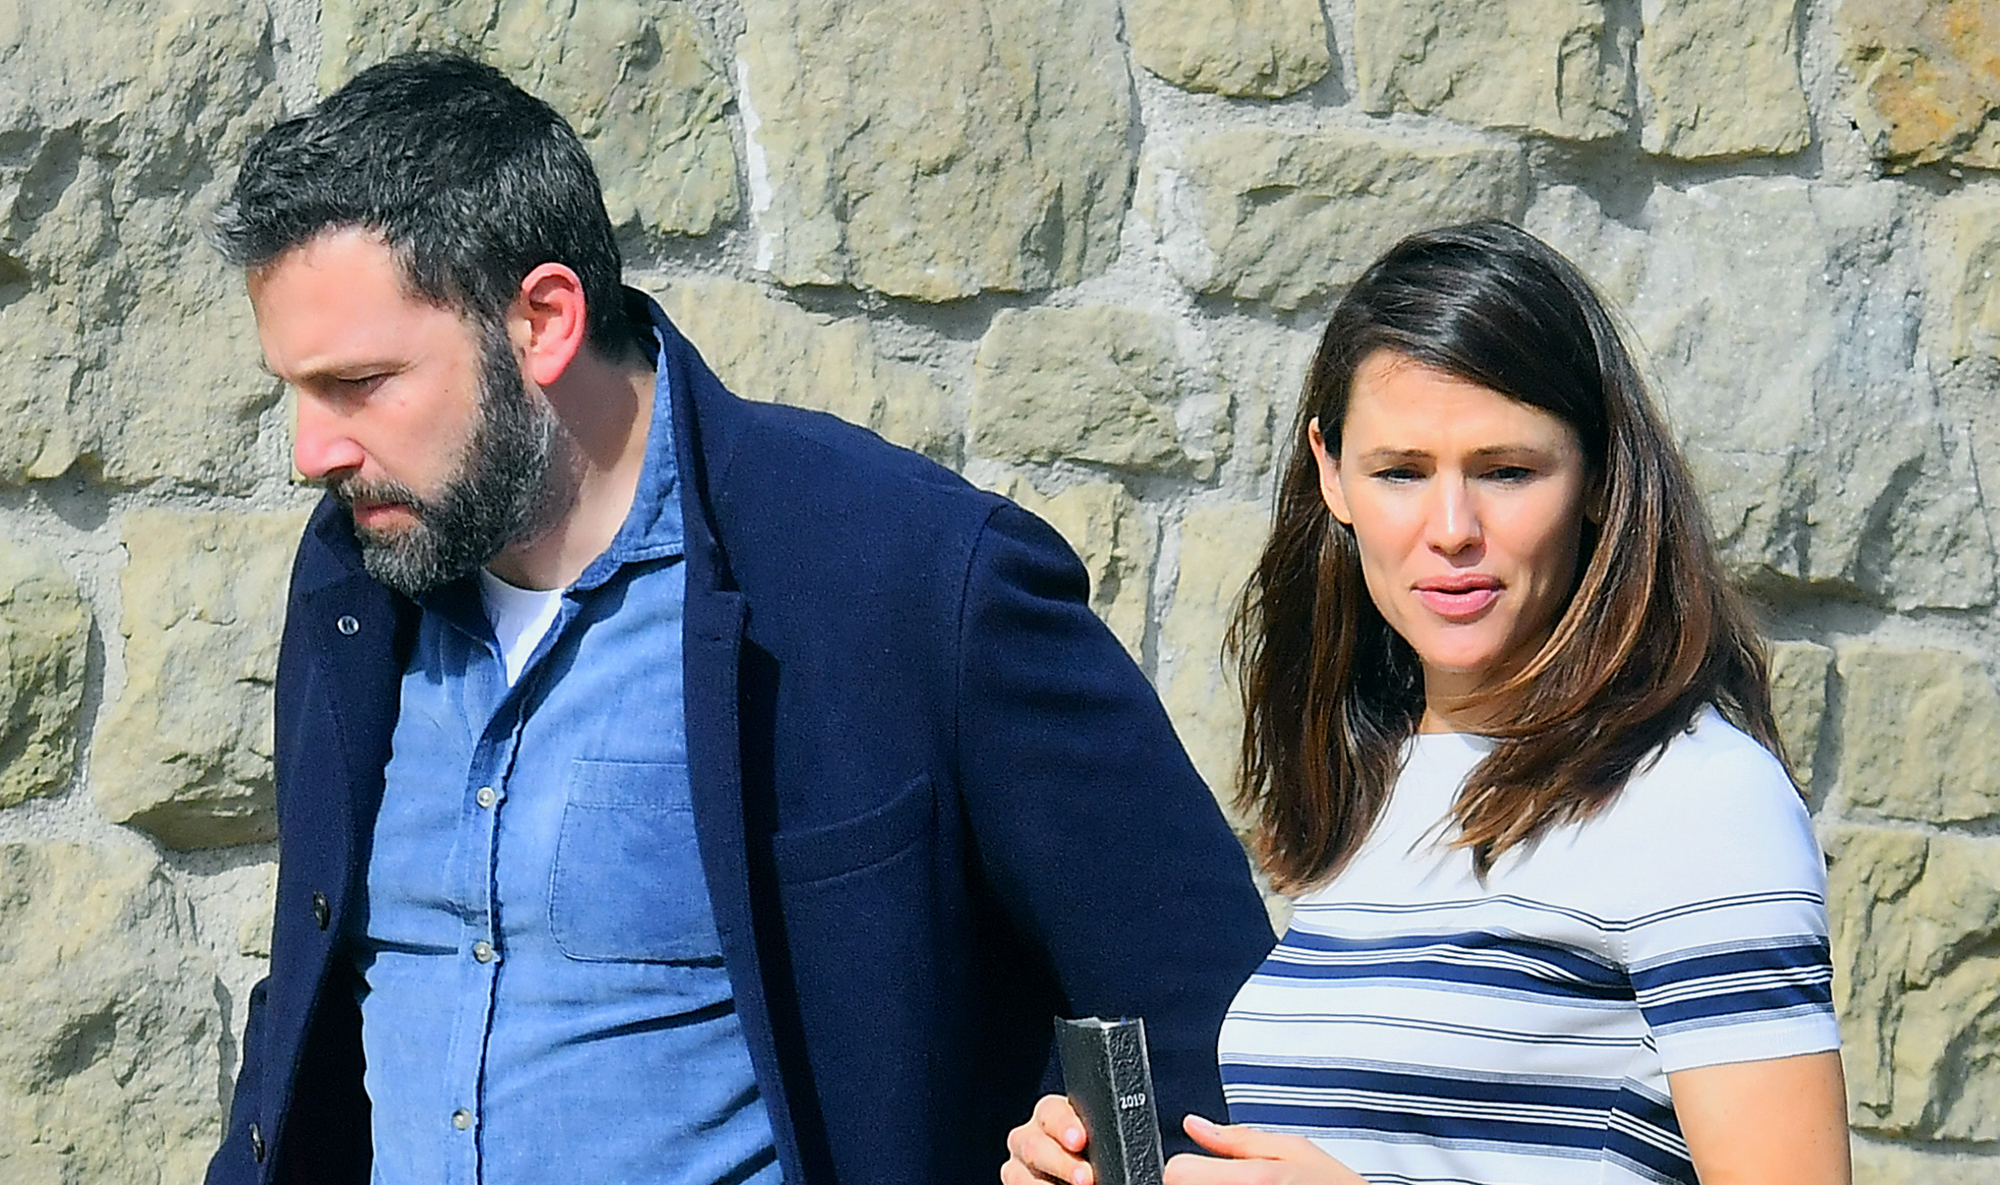 Ben Affleck and Jennifer Garner Reunite for Family Church Outing 2 Months After Finalizing Divorce - Jennifer Garner and Ben Affleck were spotted leaving church together in Pacific Palisades, CA on January 20, 2019.